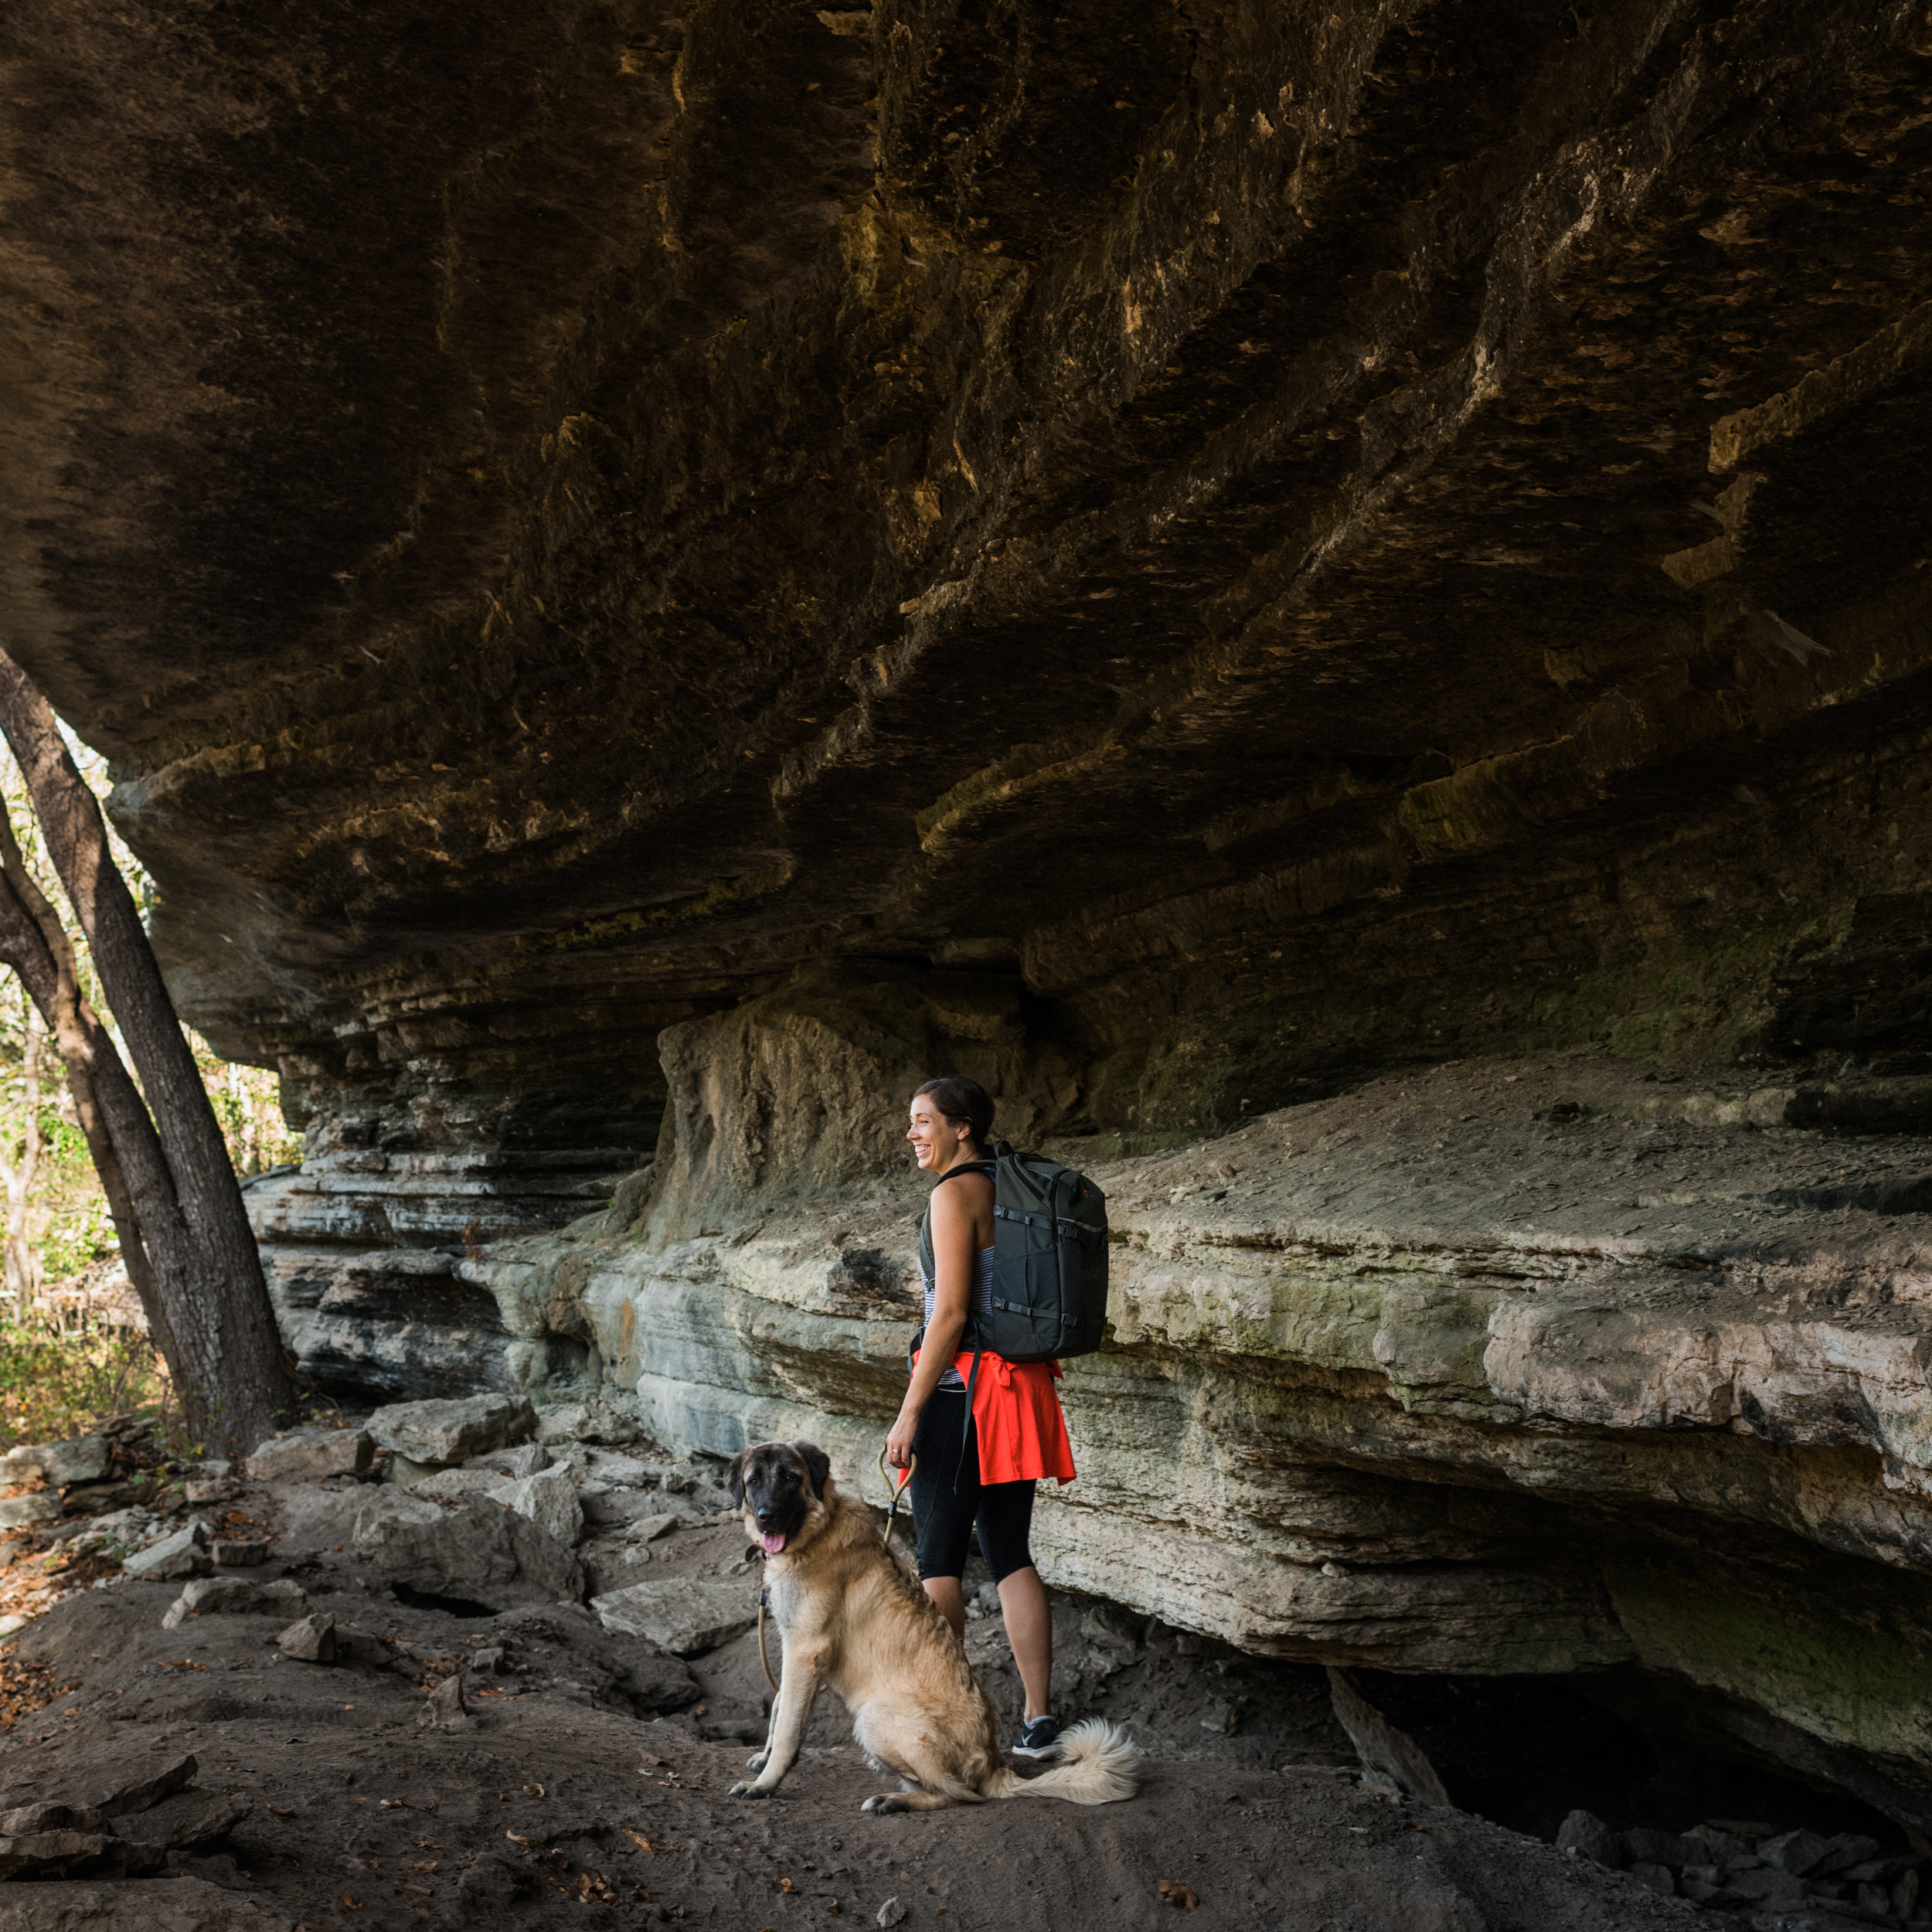 TaraShupe_Photography_SamsThrone_Climbing_Arkansas_CampingWithDogs_008.jpg